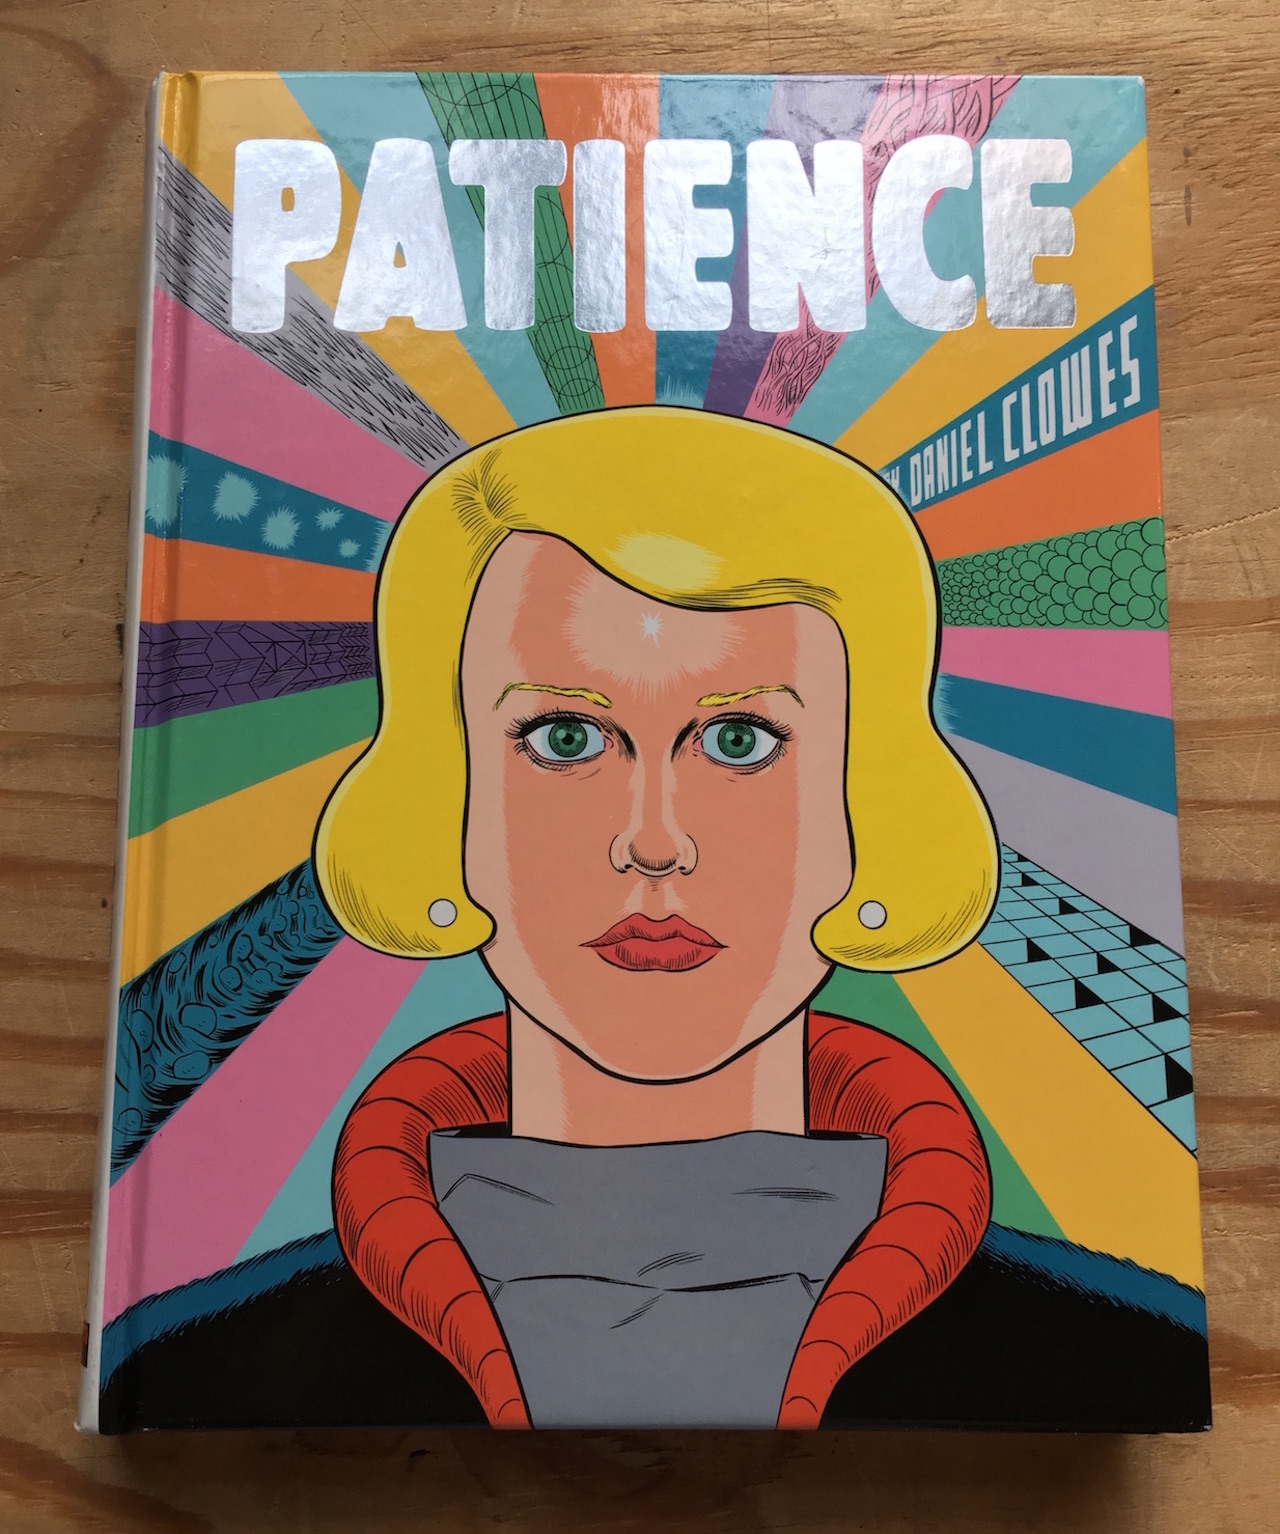 In His New Book Daniel Clowes Explores Our Urge To Change